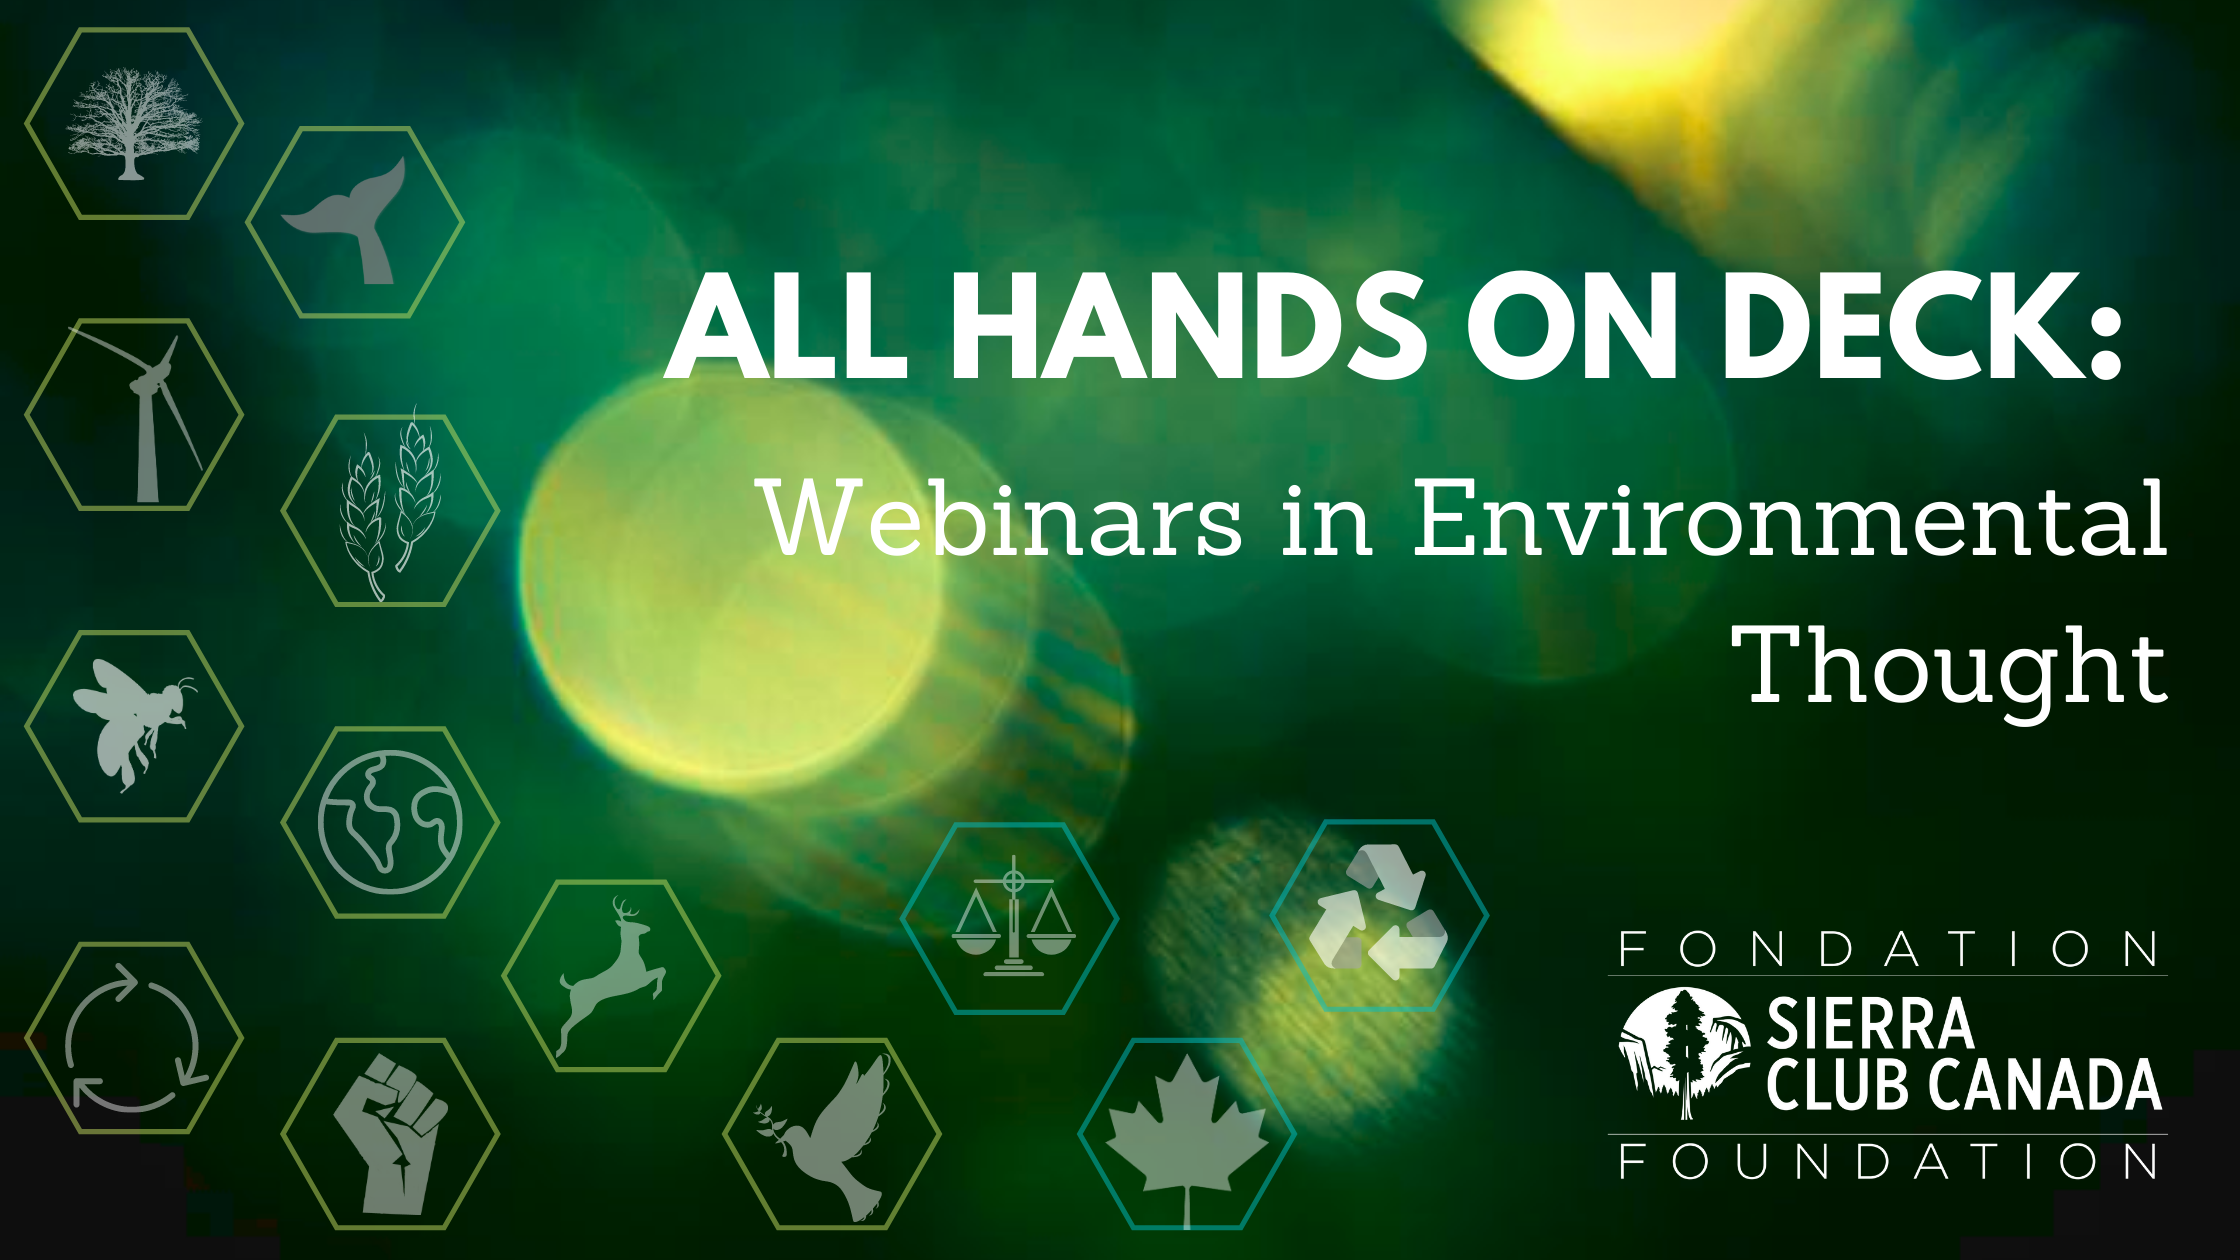 All hands on deck: Webinars in Environmental Thought